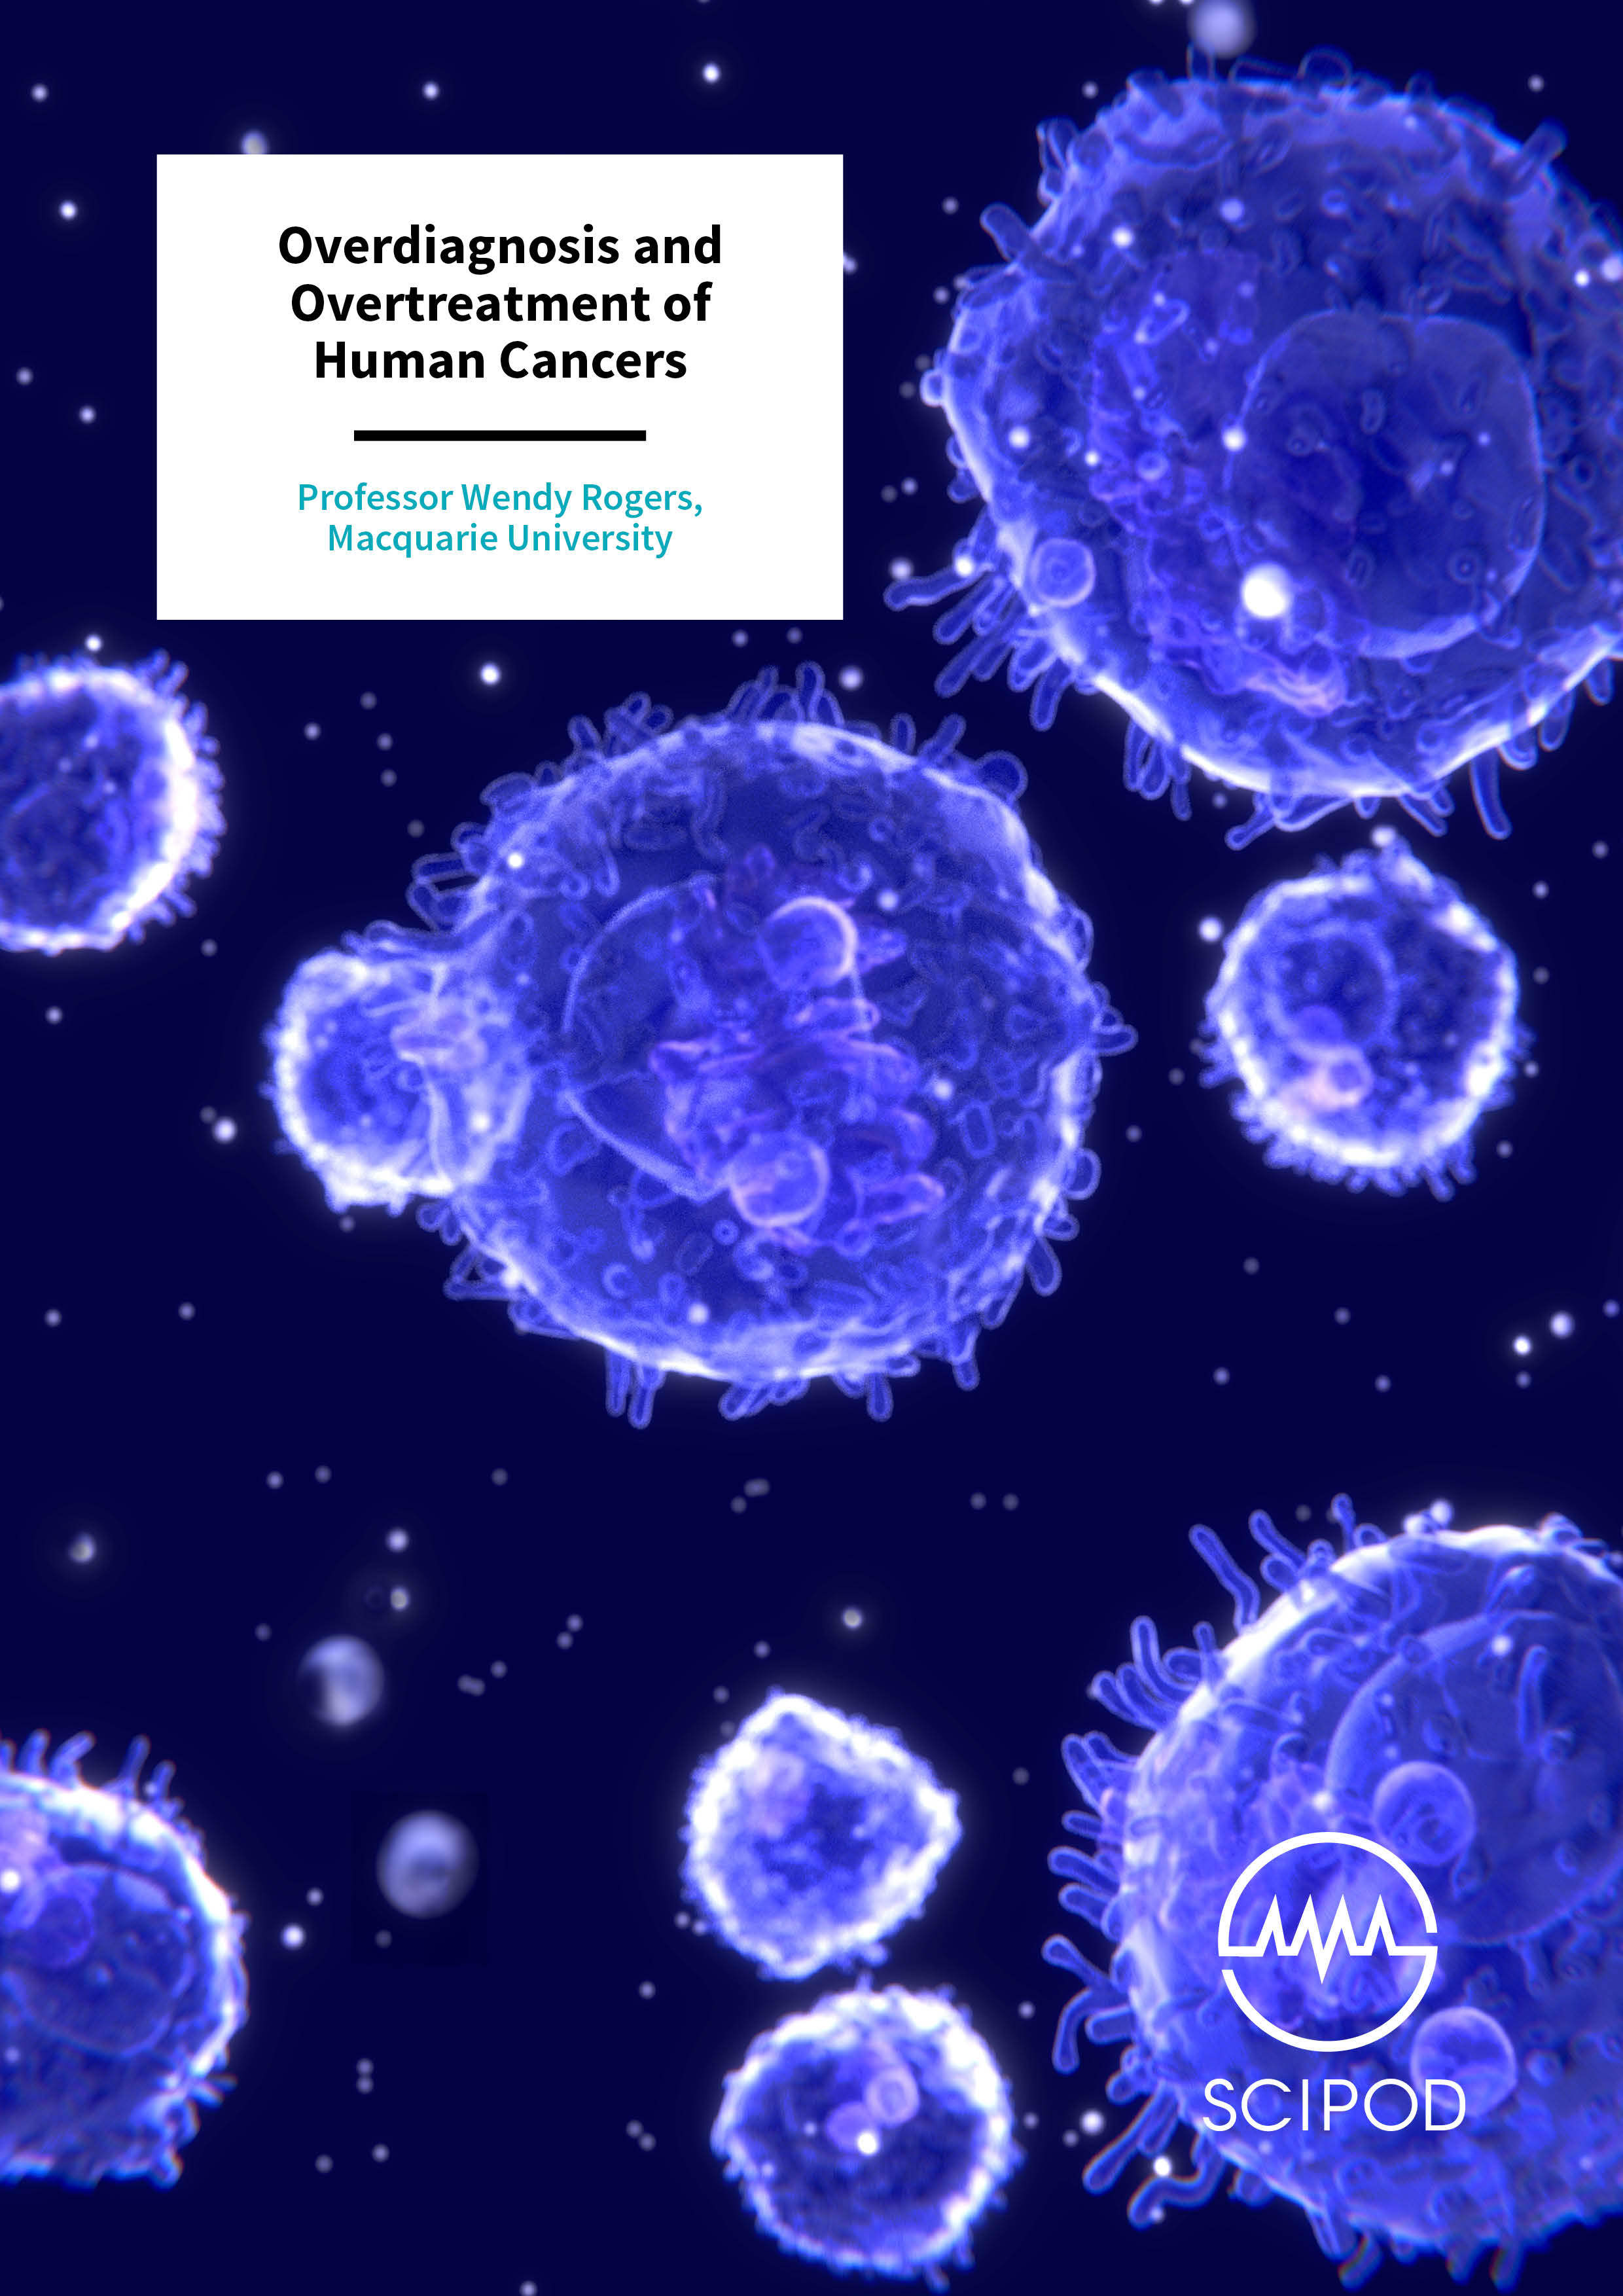 Overdiagnosis And Overtreatment Of Human Cancers – Professor Wendy Rogers, Macquarie University